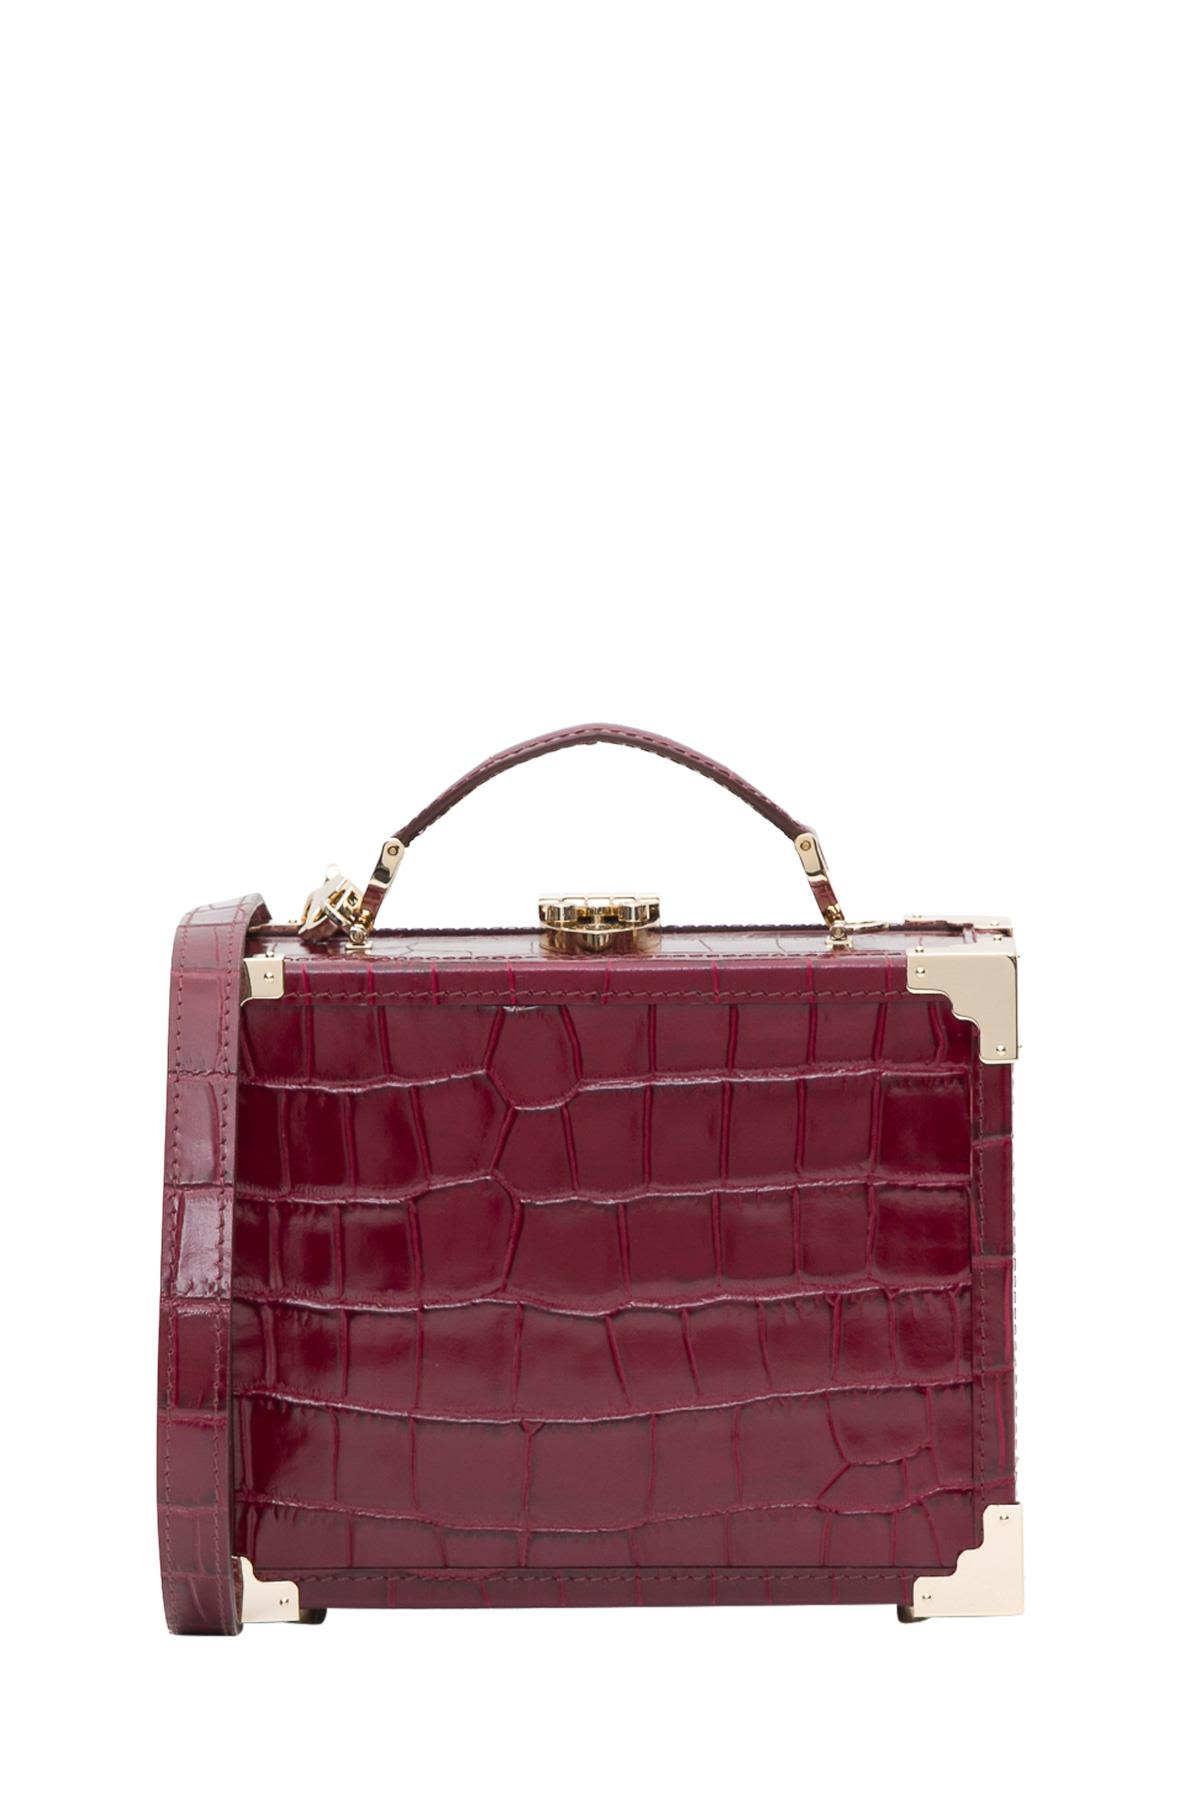 Aspinal of London Mini Trunk Shoulder Bag